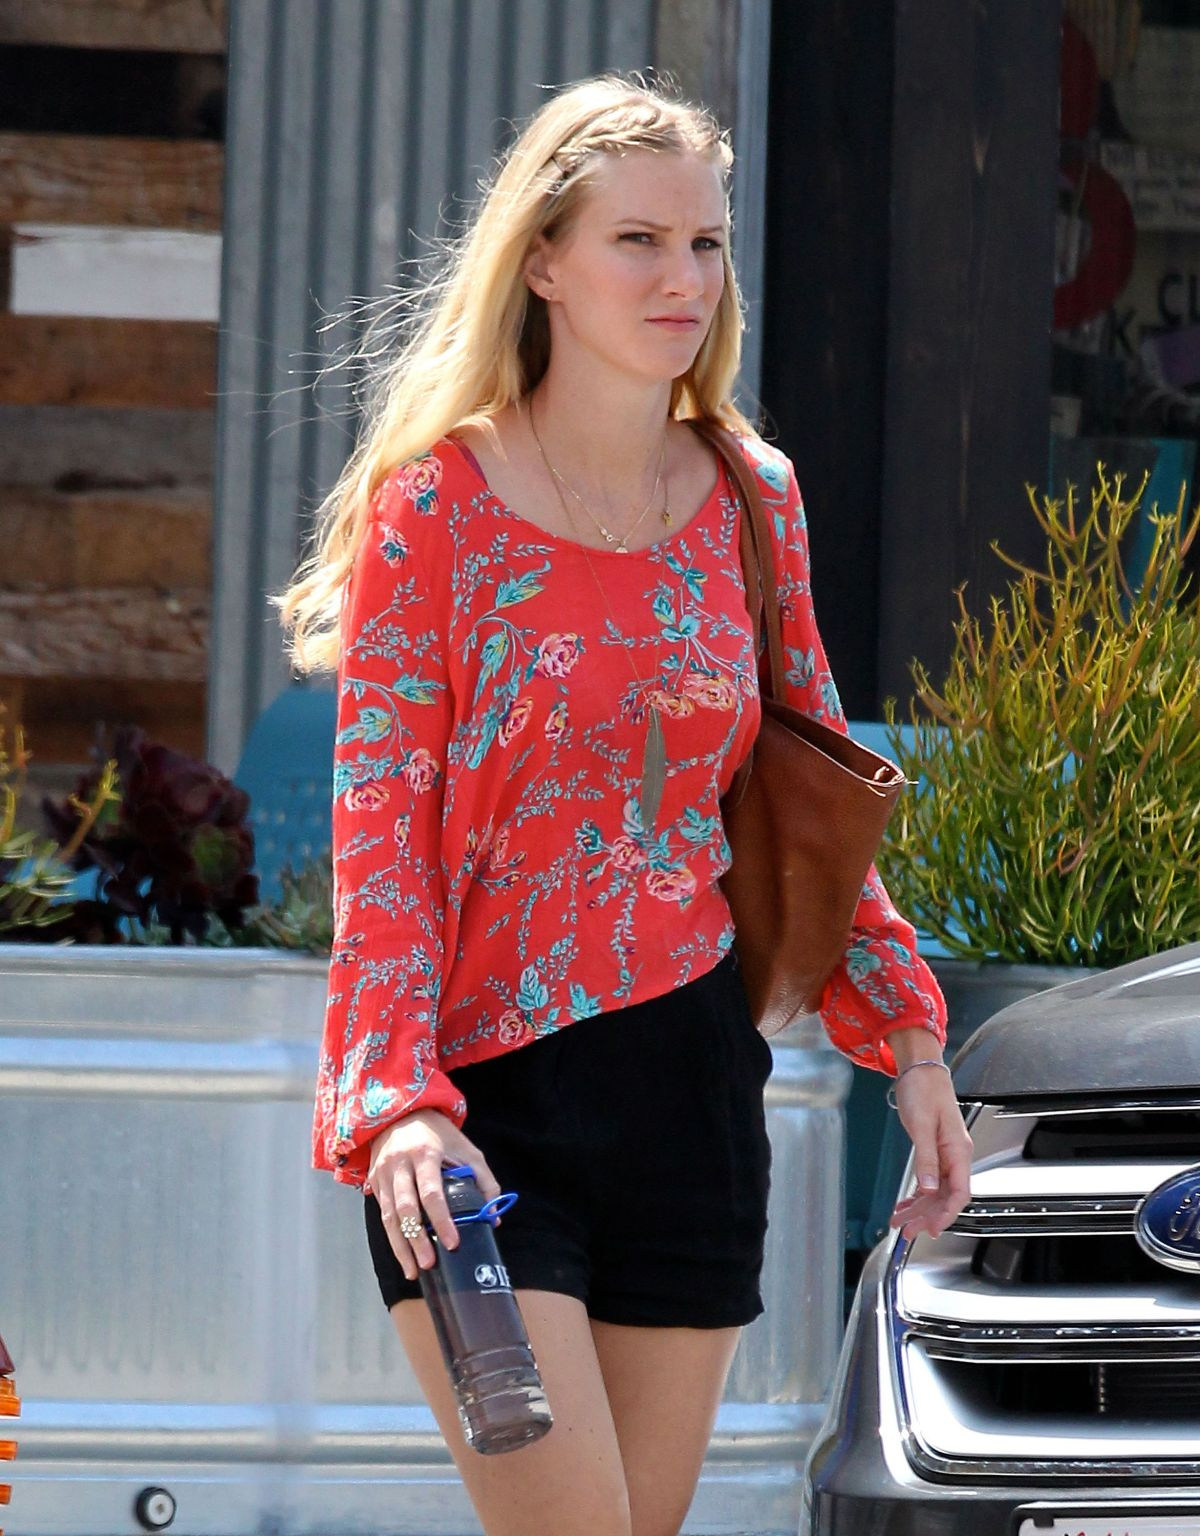 heather morris out and about in los angeles 08 20 2015